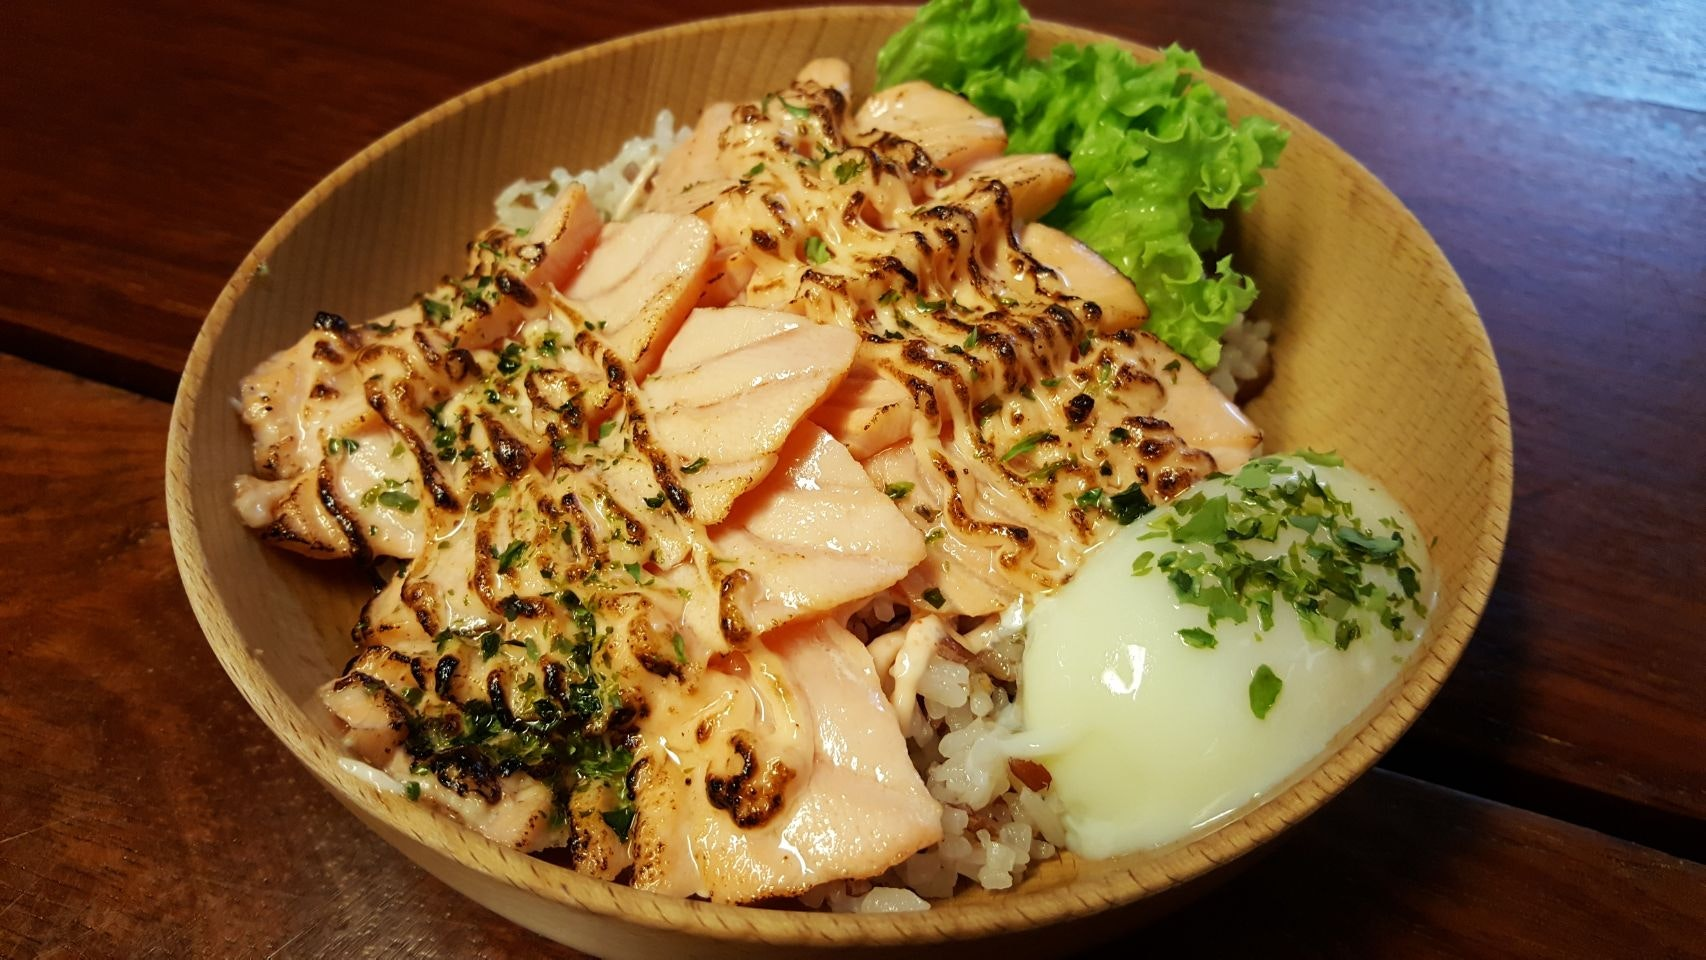 Delicious Salmon Donburi Bowls At Only $9.90